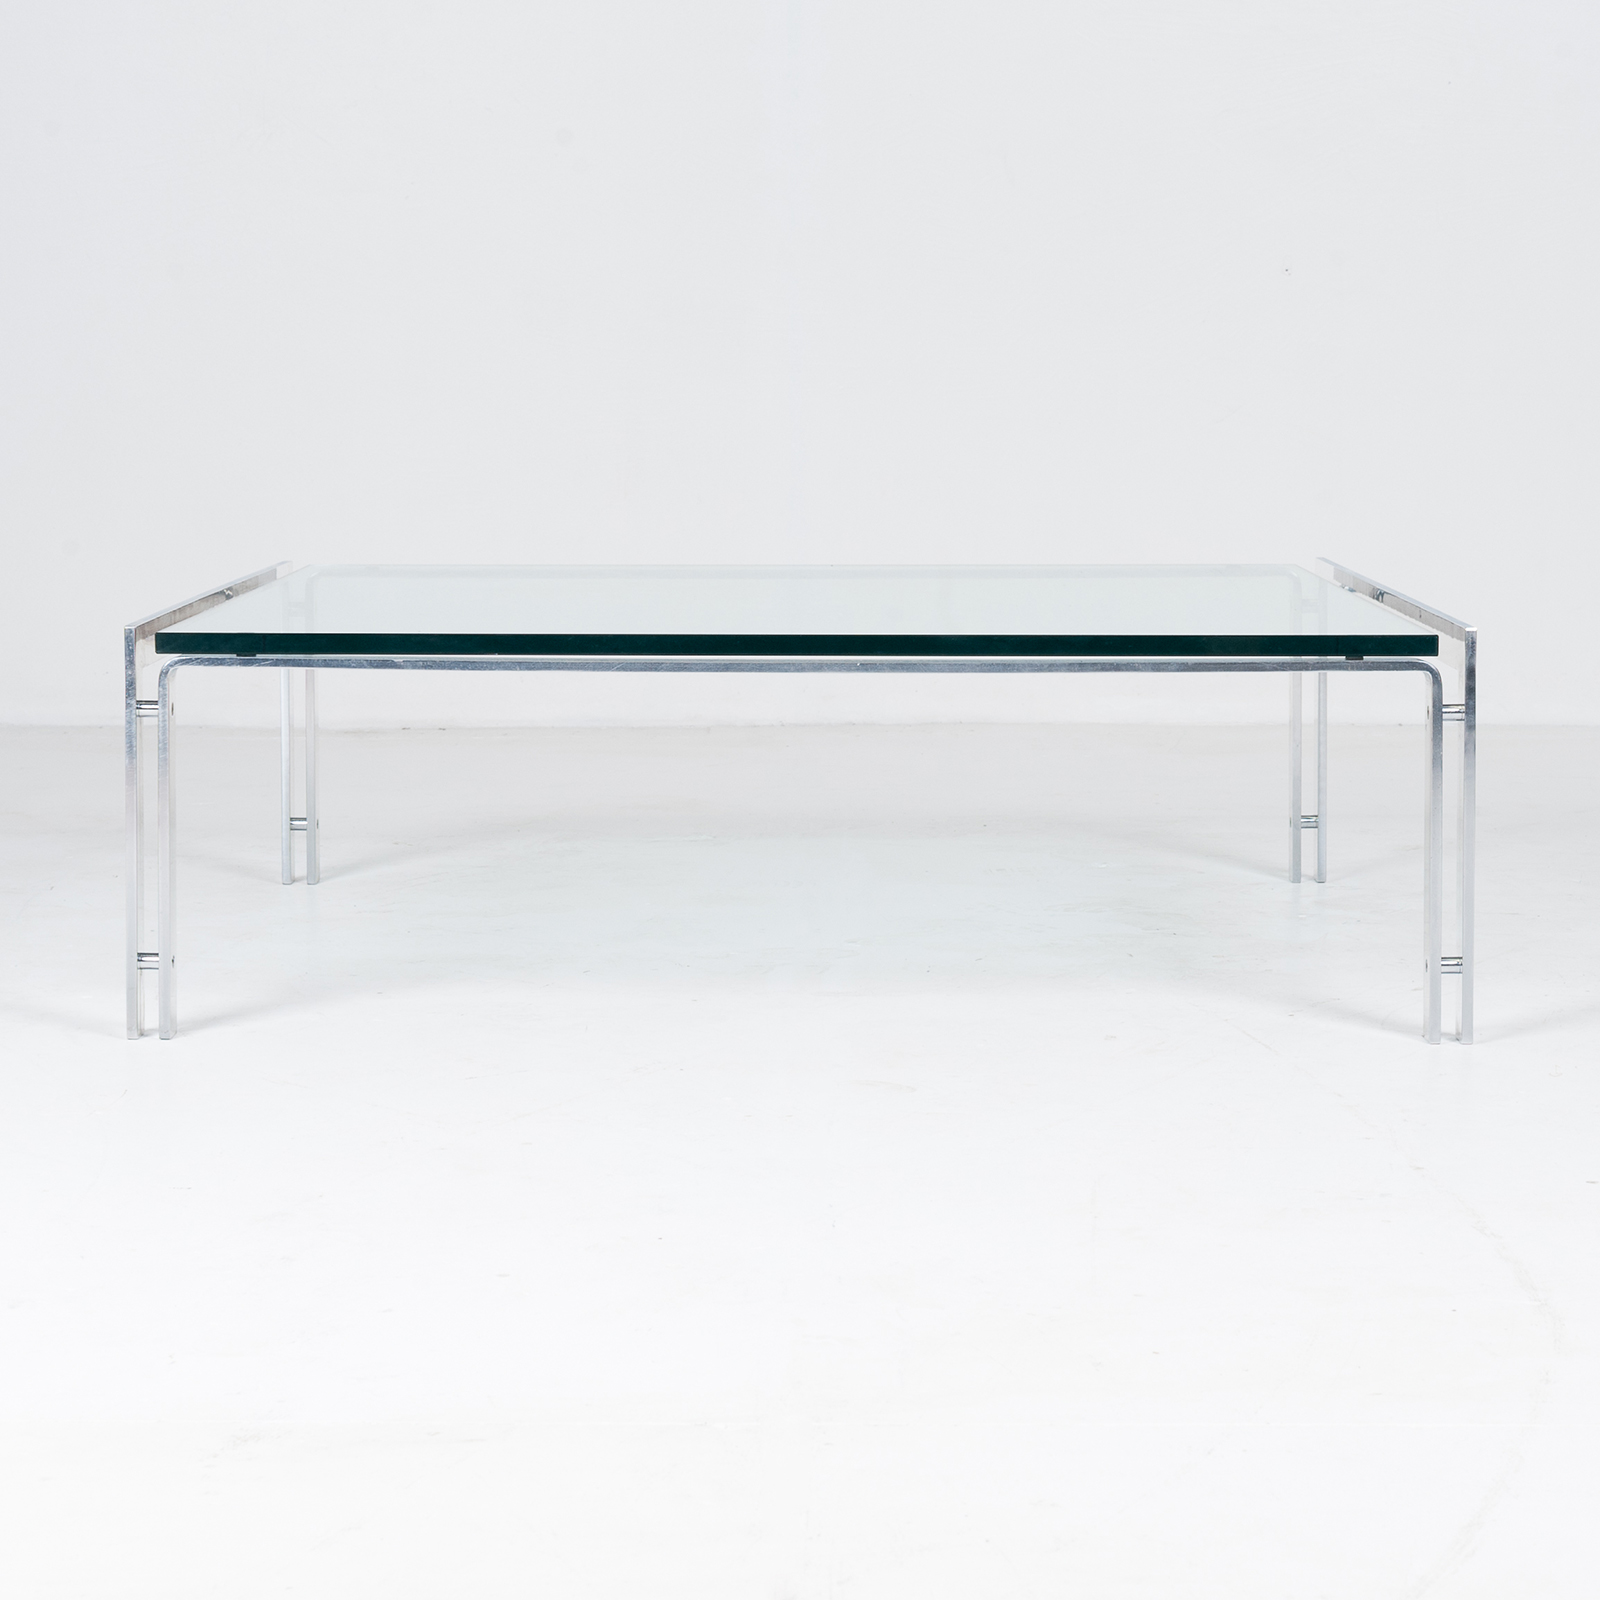 Coffee Table By Metaform In Glass And Chrome, 1970s, The Netherlands55